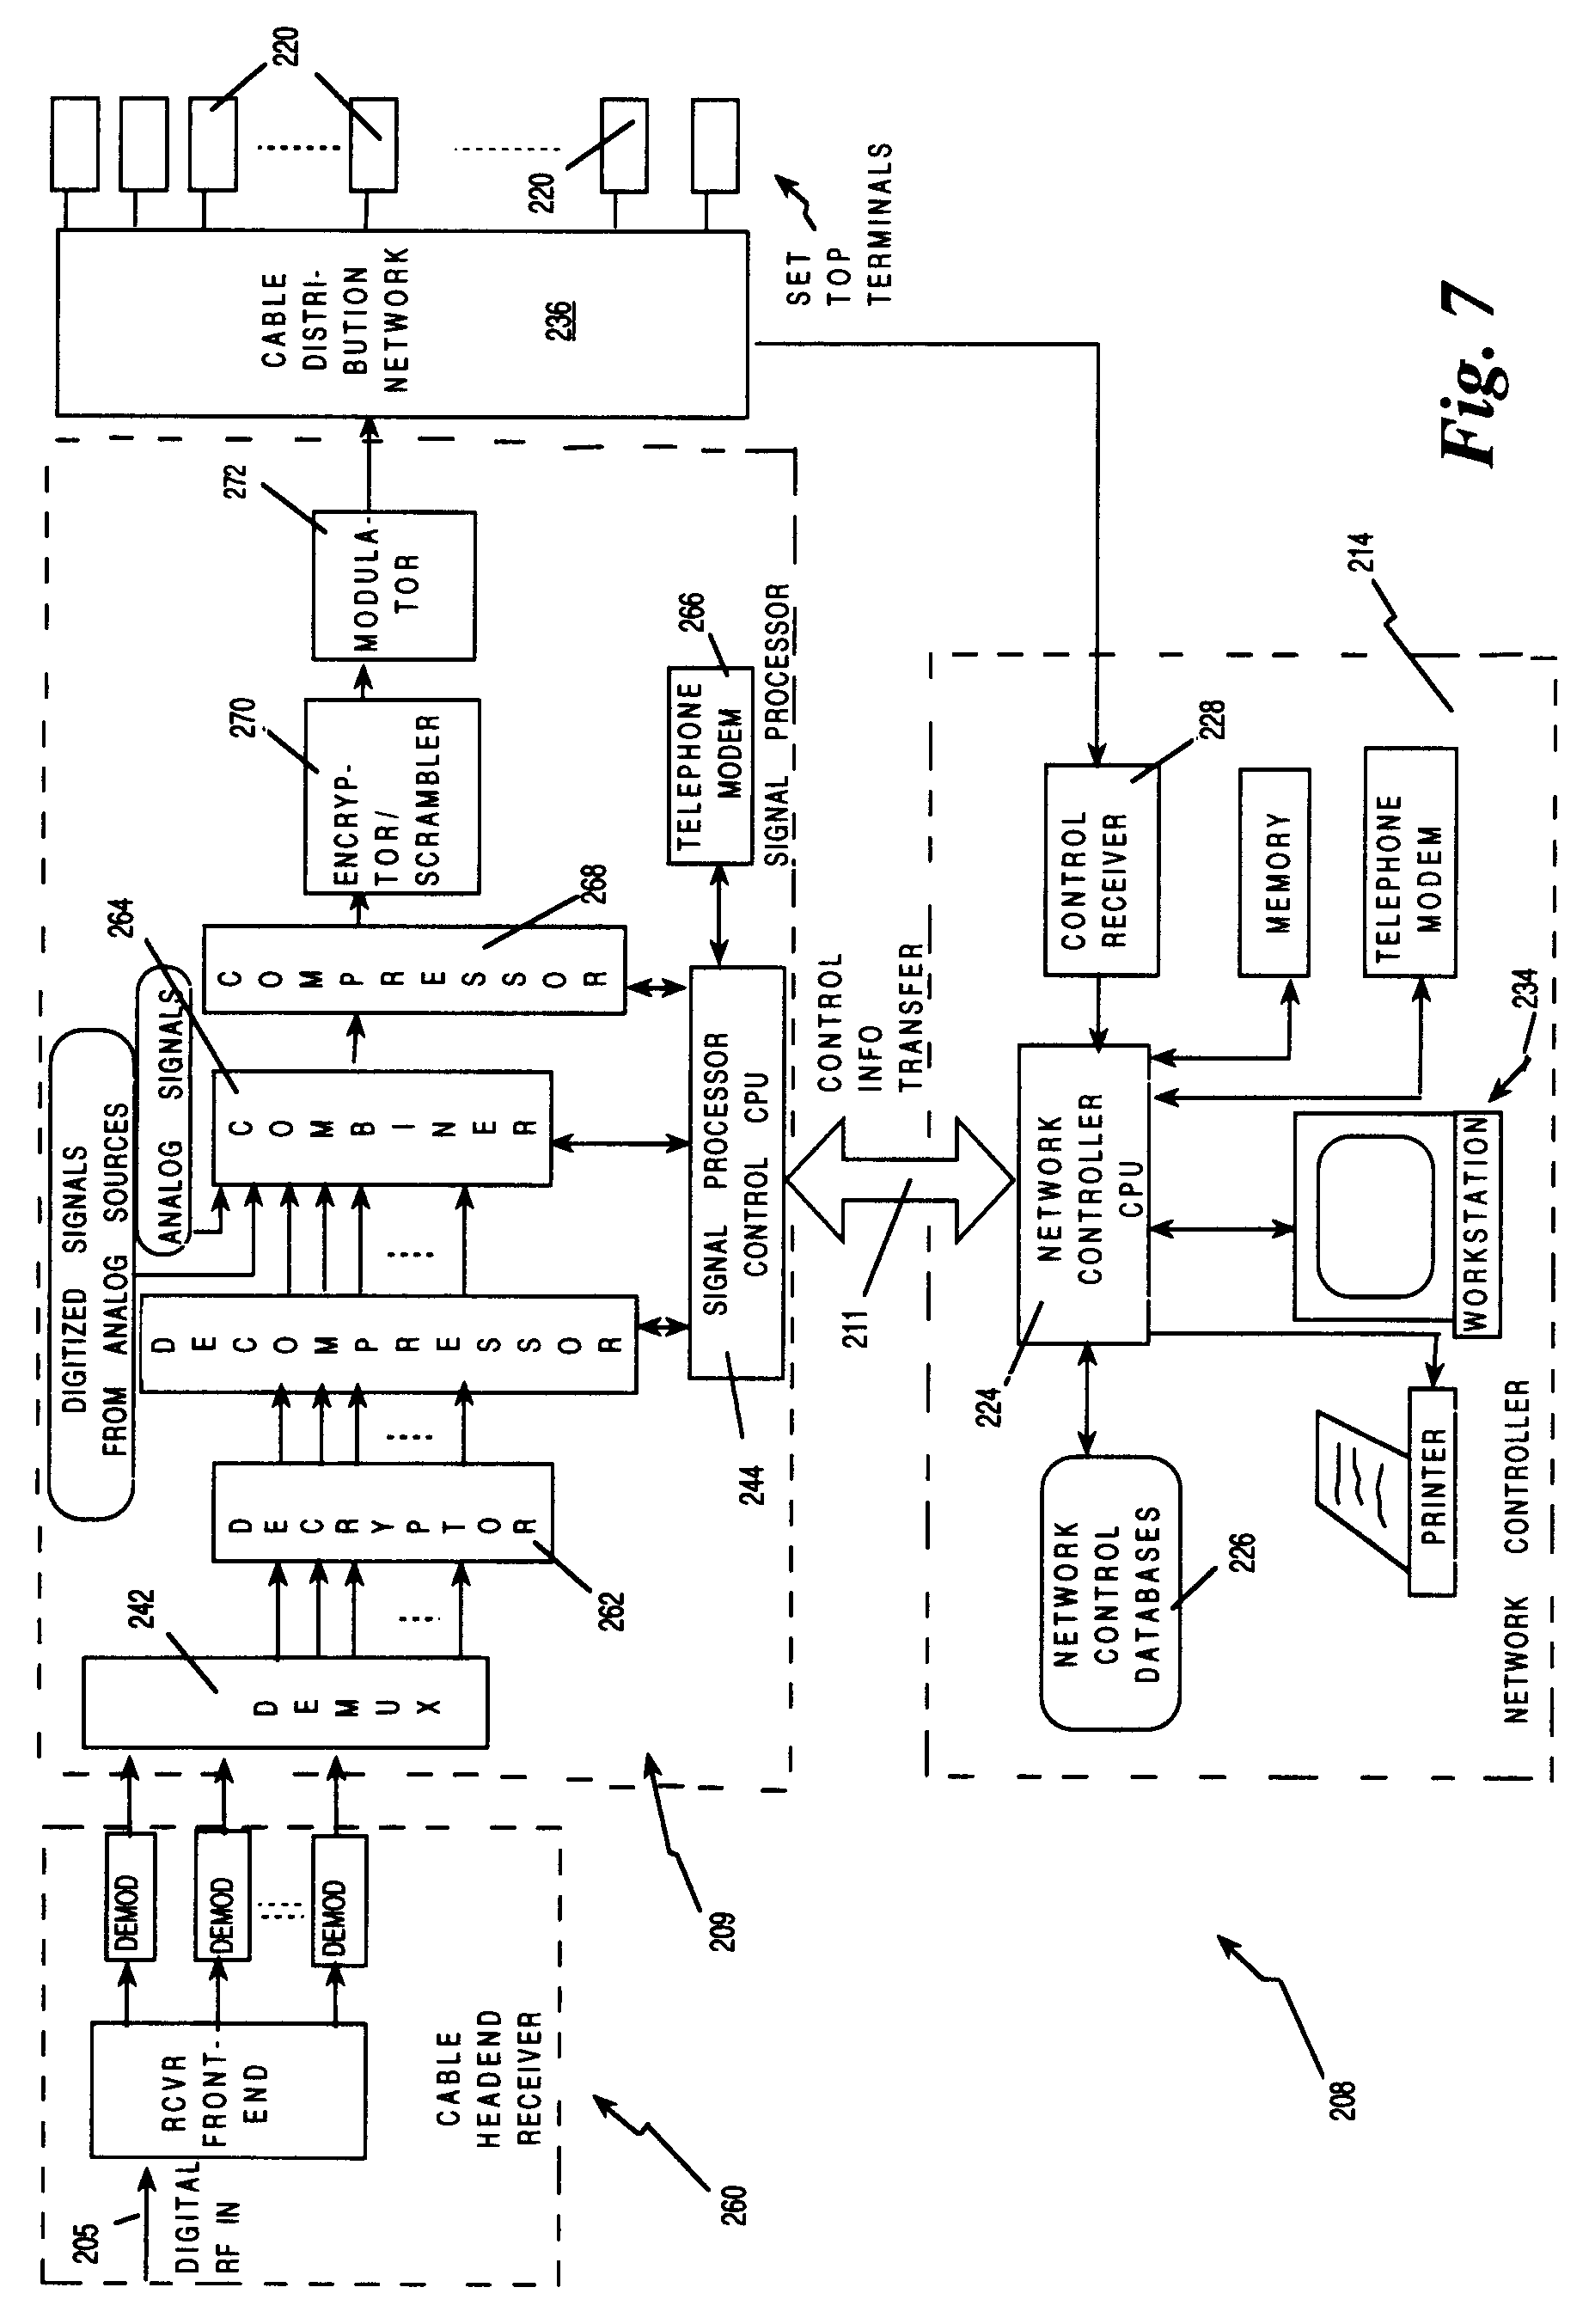 EP0822718A1 - Network controller for cable television